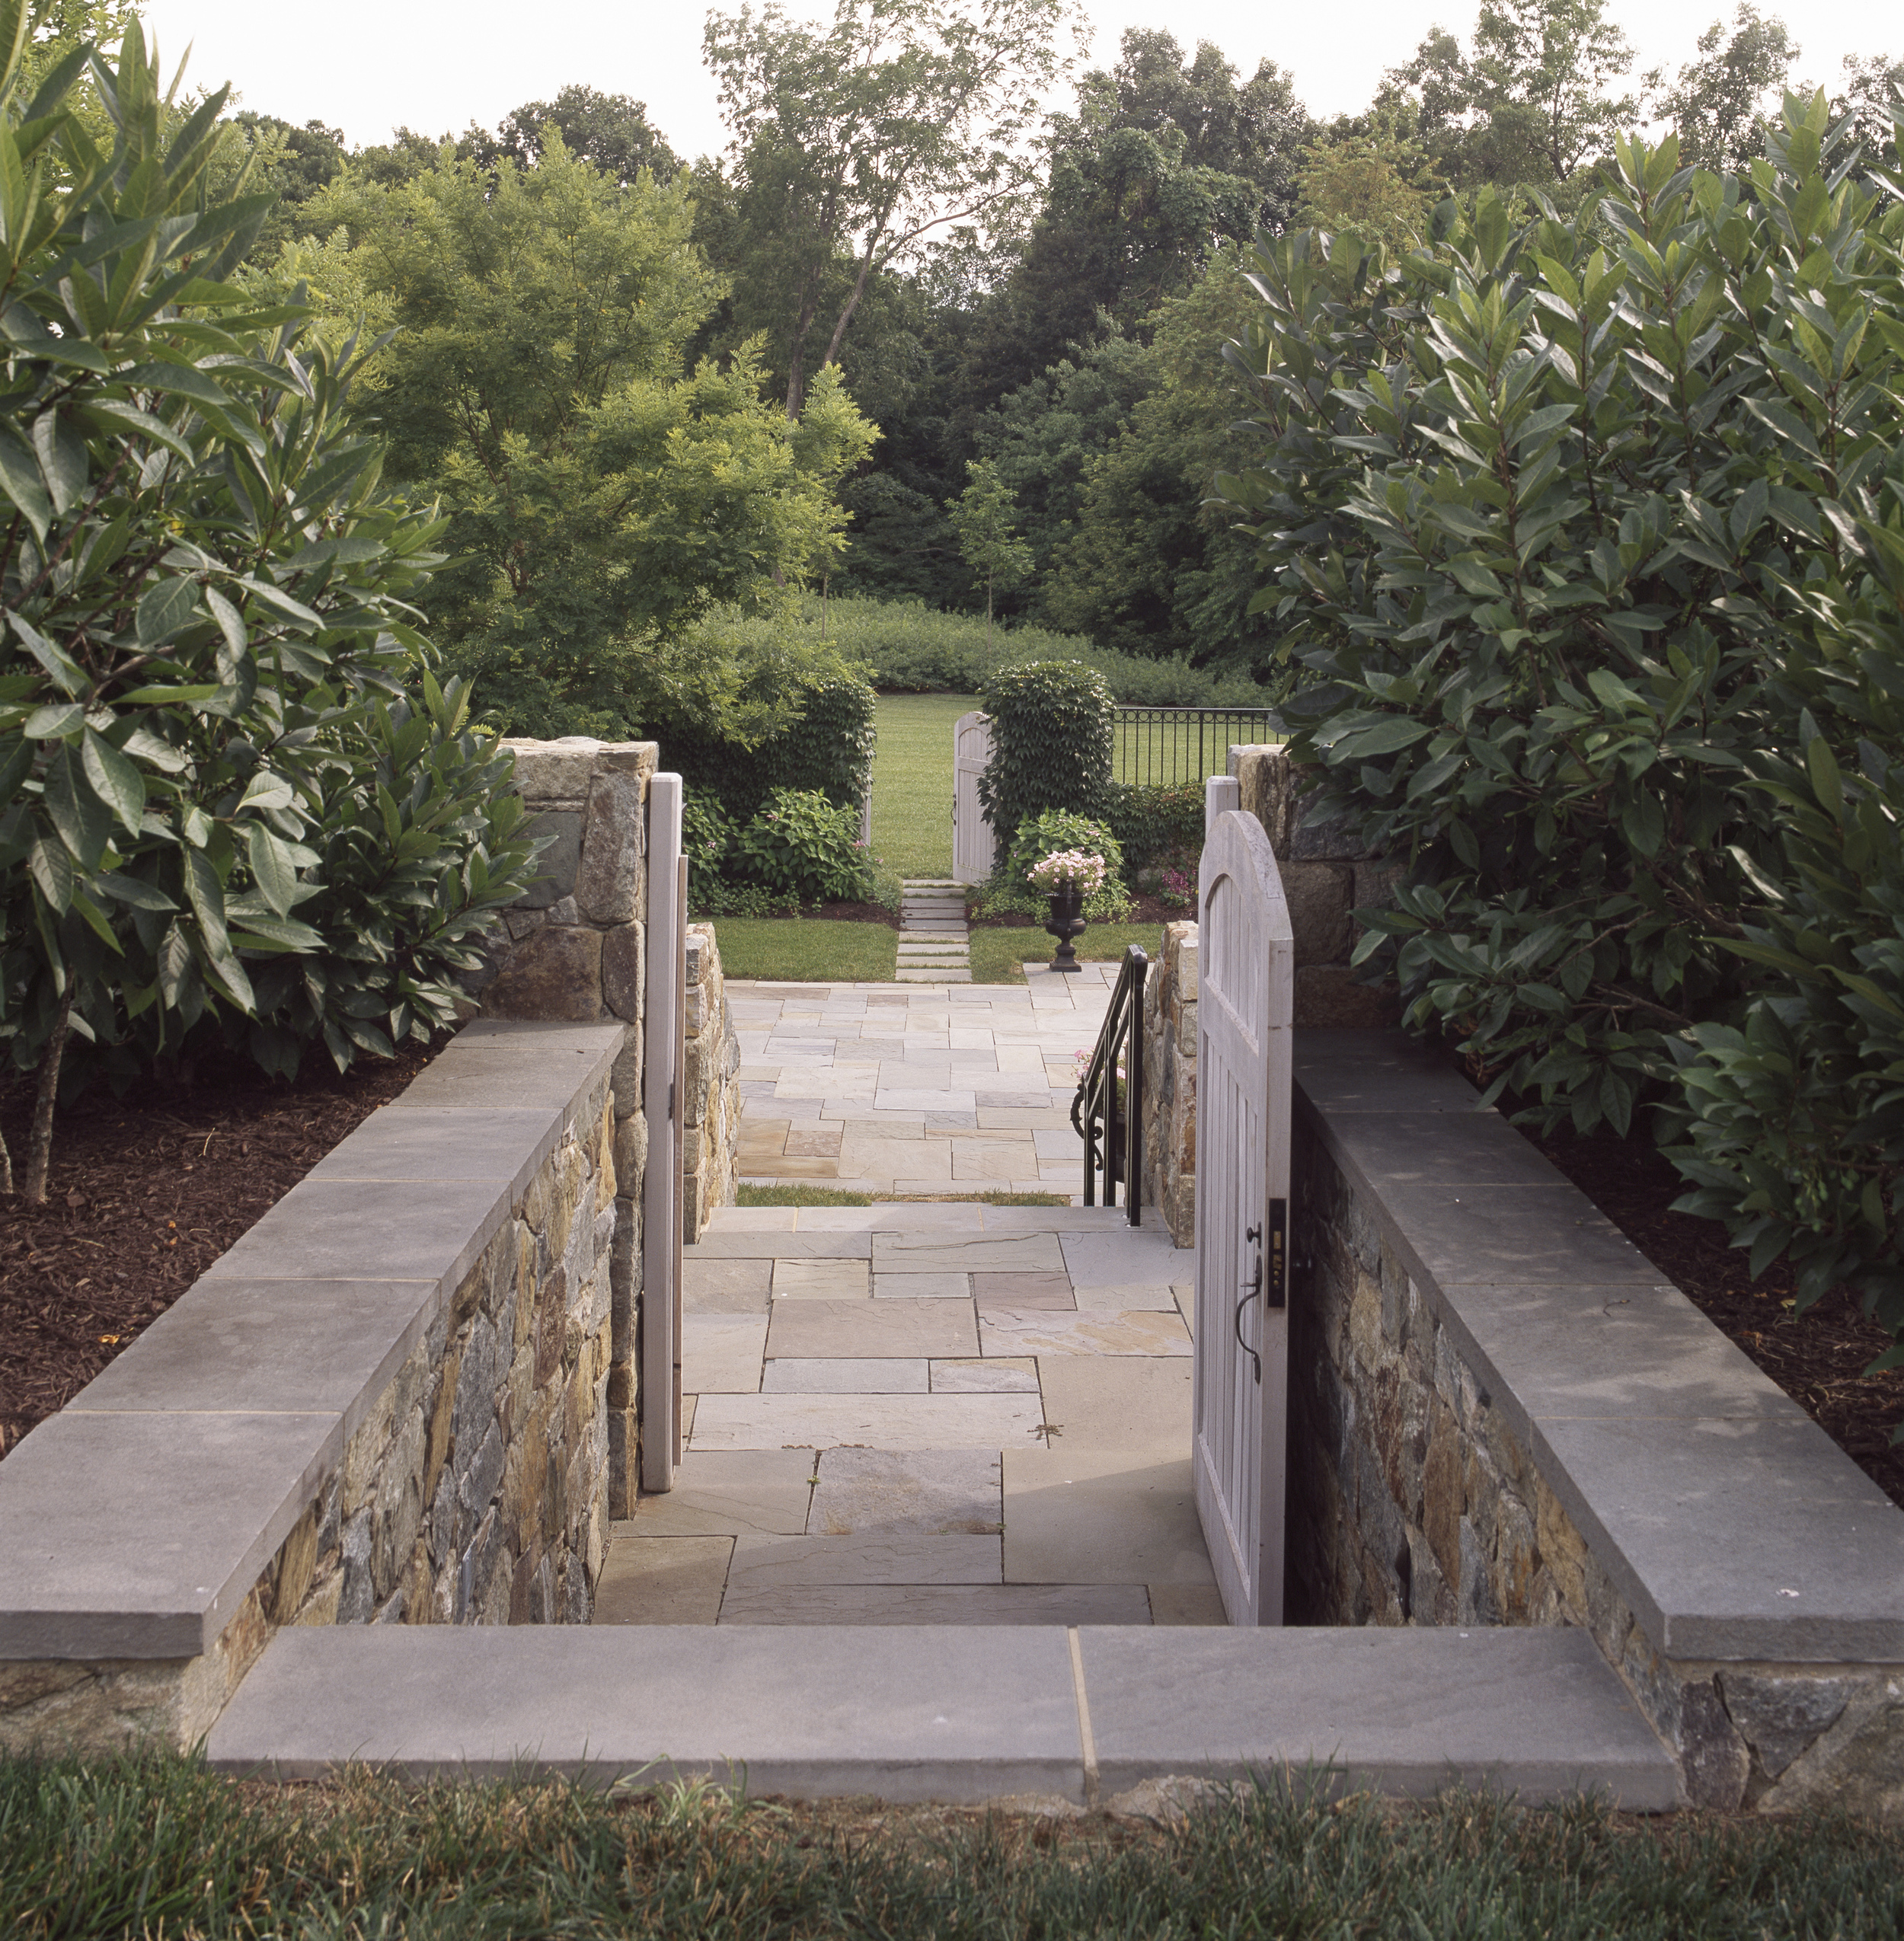 Project Location: Howard County, Maryland  Completion: 2006  General Contractor: Horizon Builders, Chapel Valley  Project Architect: Muse Architects  Primary Material Palette: fieldstone, bluestone  Photos By: Erik Kvalsvik  Awards: Merit Award, American Society of Landscape Architects Maryland Chapter, 2006 Outstanding Landscaping Award, Washington Spaces, 2008